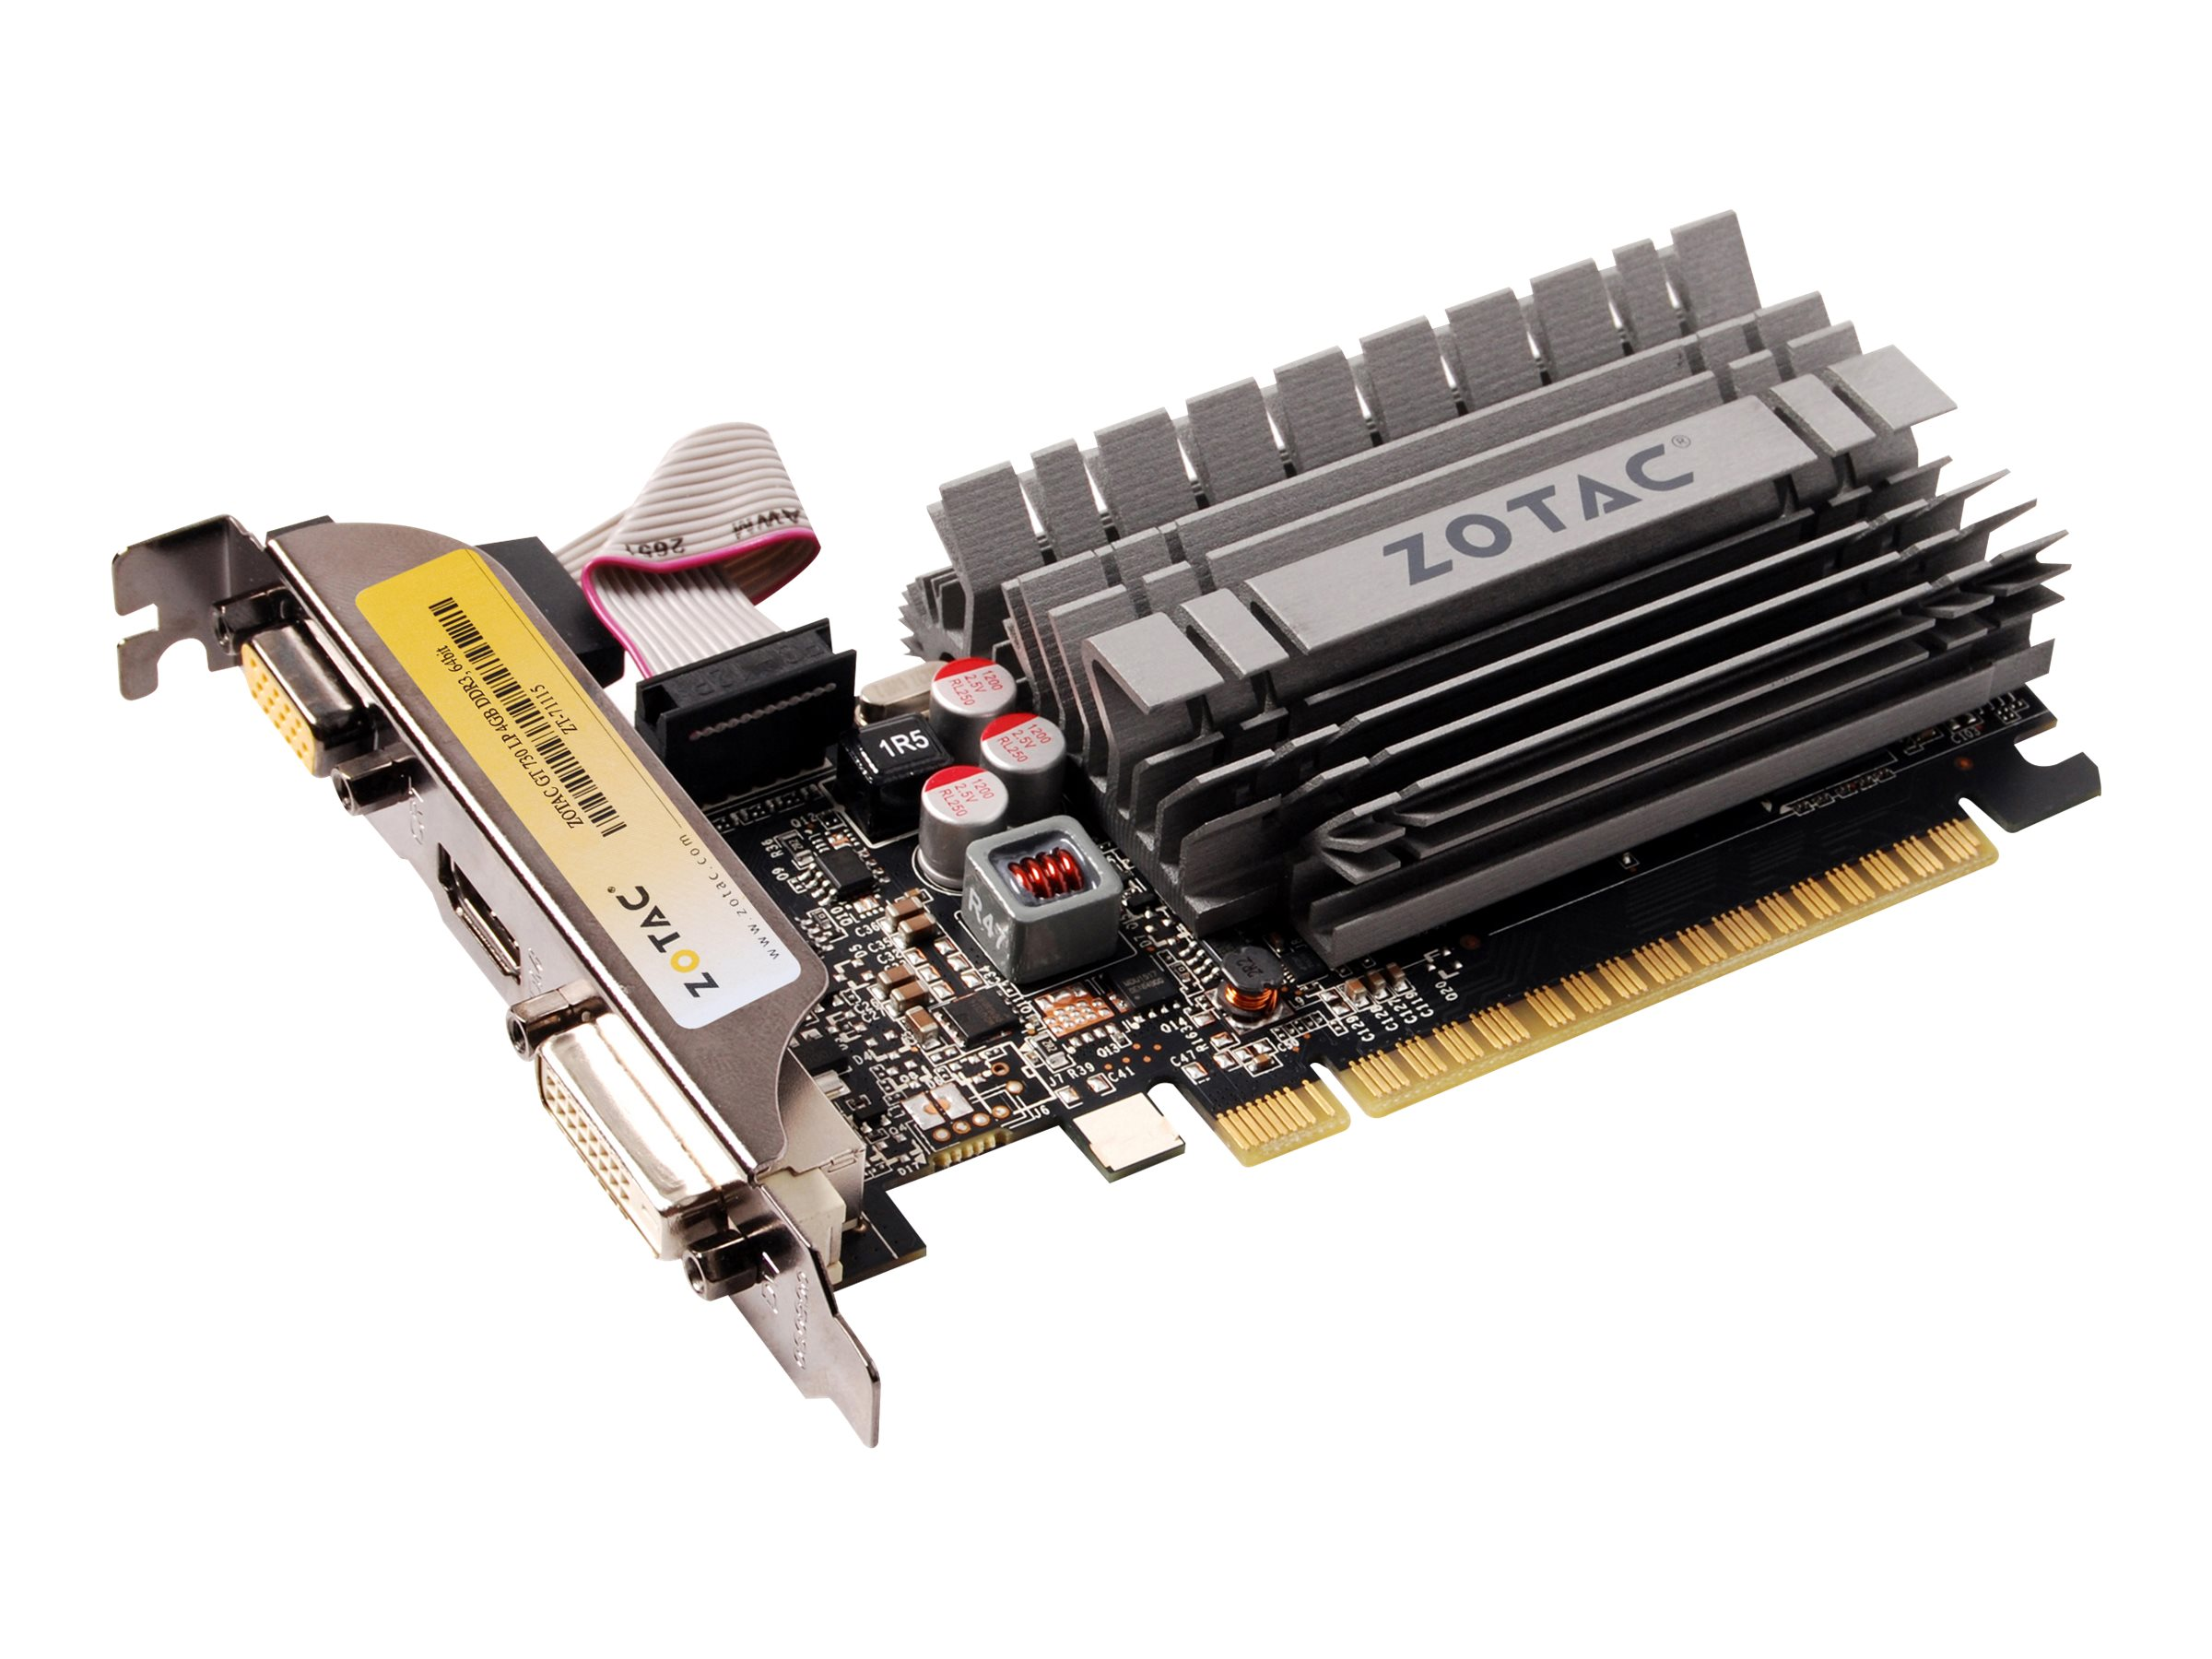 ZOTAC GeForce GT 730 - Grafikkarten - GF GT 730 - 4 GB DDR3 - PCIe 2.0 x16 Low-Profile - DVI, D-Sub, HDMI